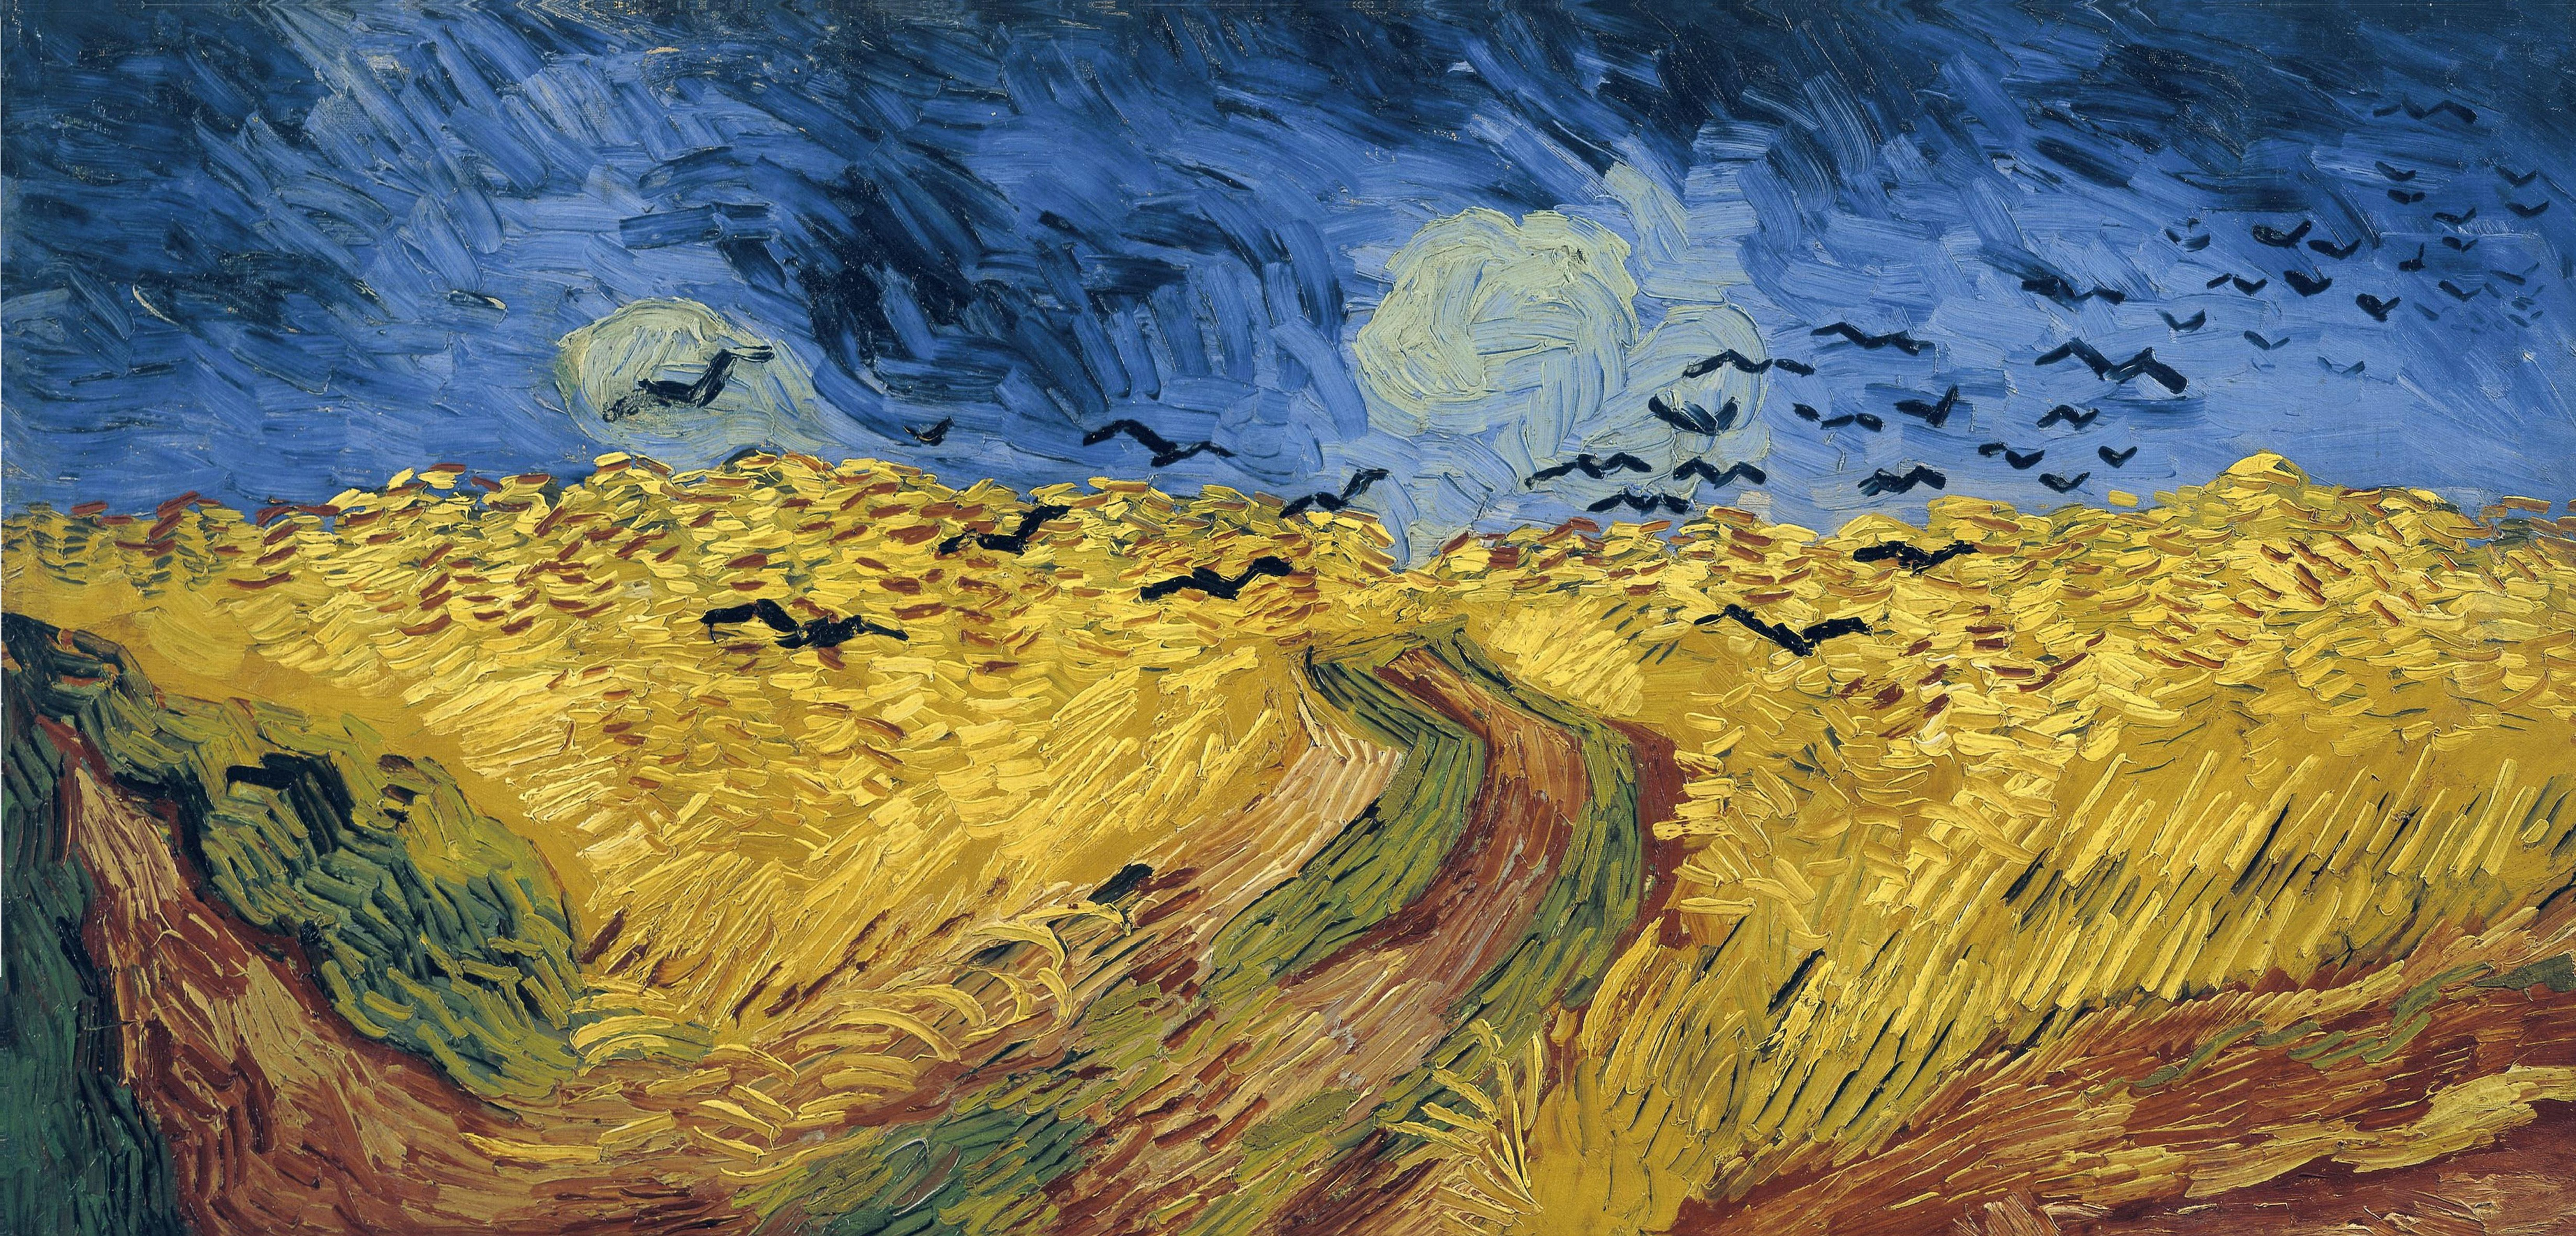 Oil painting of yellow field, stormy sky, and flying crows.